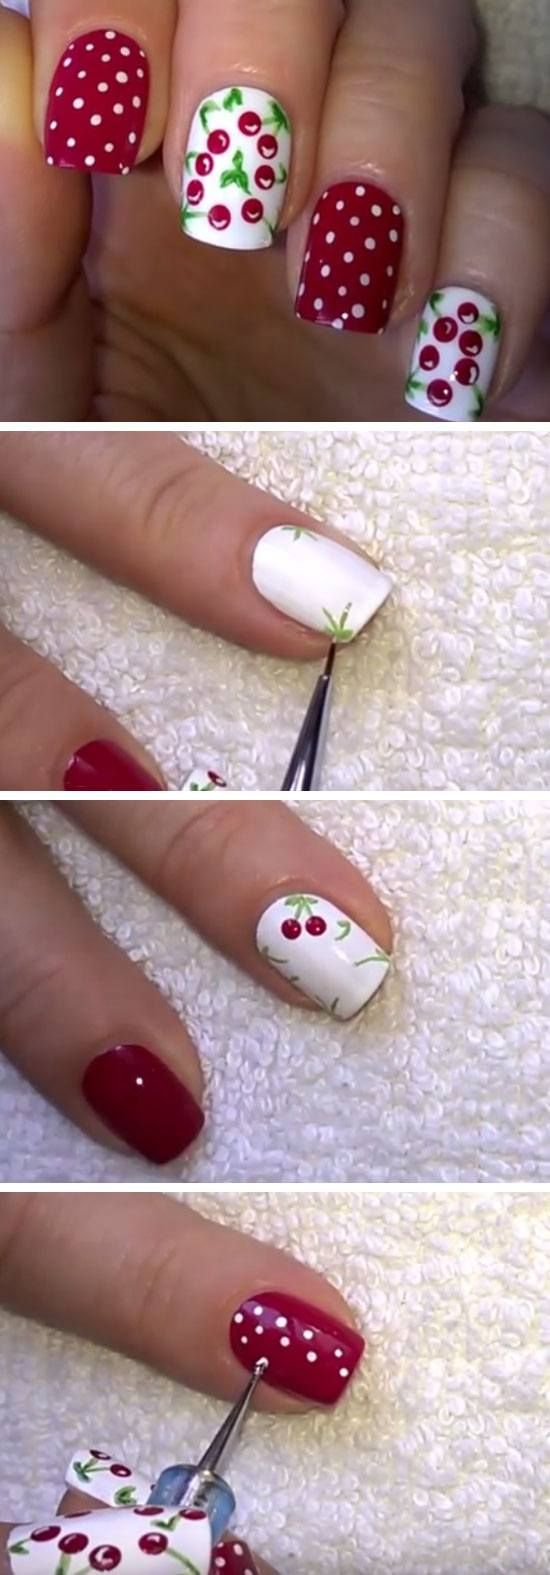 Cherry Nail Art Design | 18 Easy Summer Nails Designs for Summer | Cute Nail Art Ideas for Teens